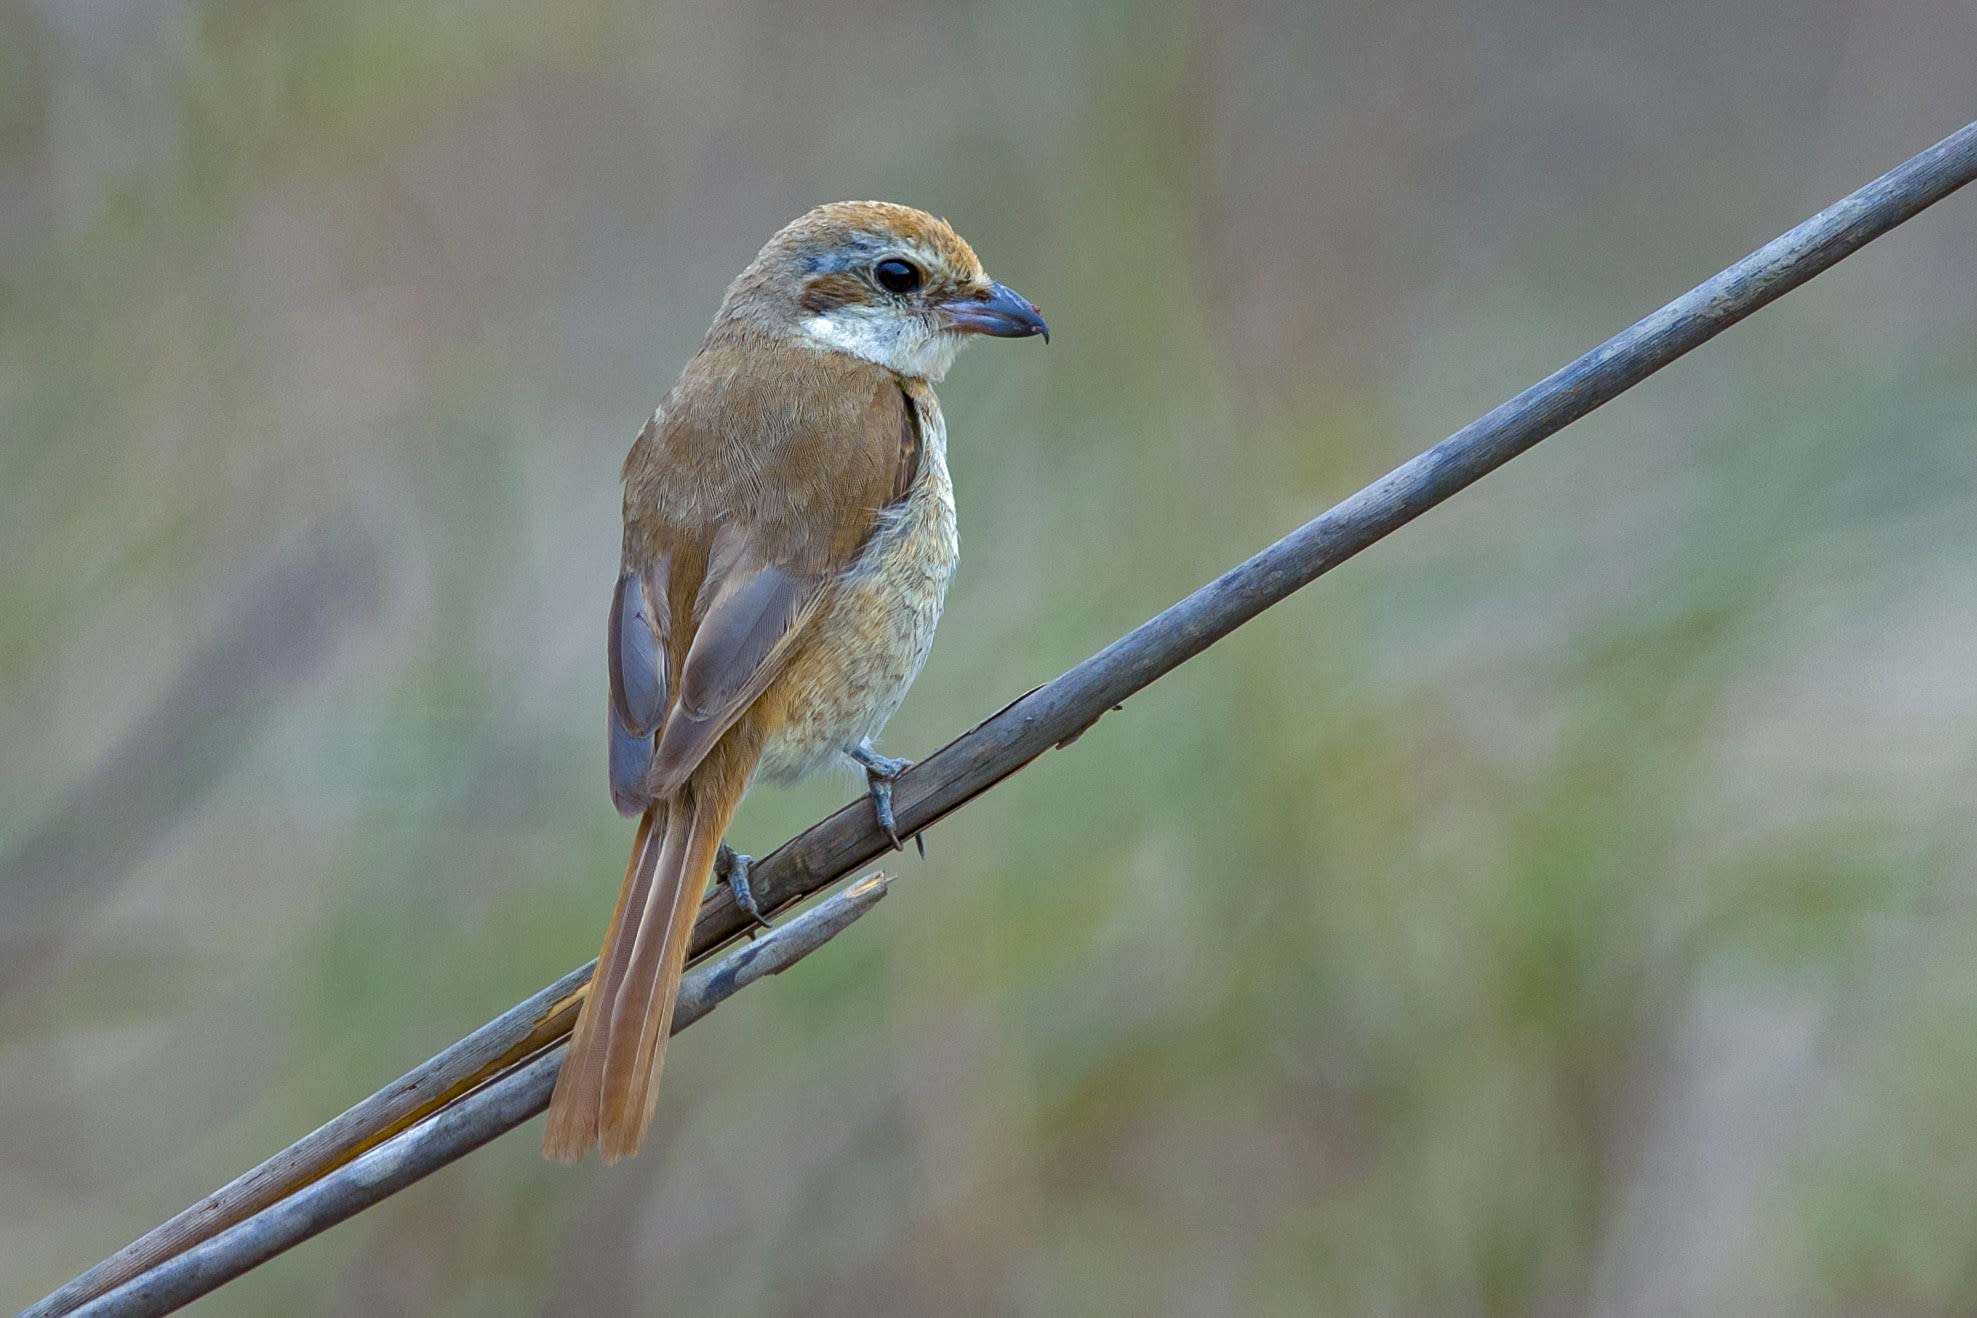 The brown shrike breeds in northern Asia from Mongolia to Siberia, and travels to South Asia during the winters. However, some records show that it has also been spotted in as far as Alaska.  This bird was photographed in Kanha National Park. Photo: Dhritiman Mukherjee